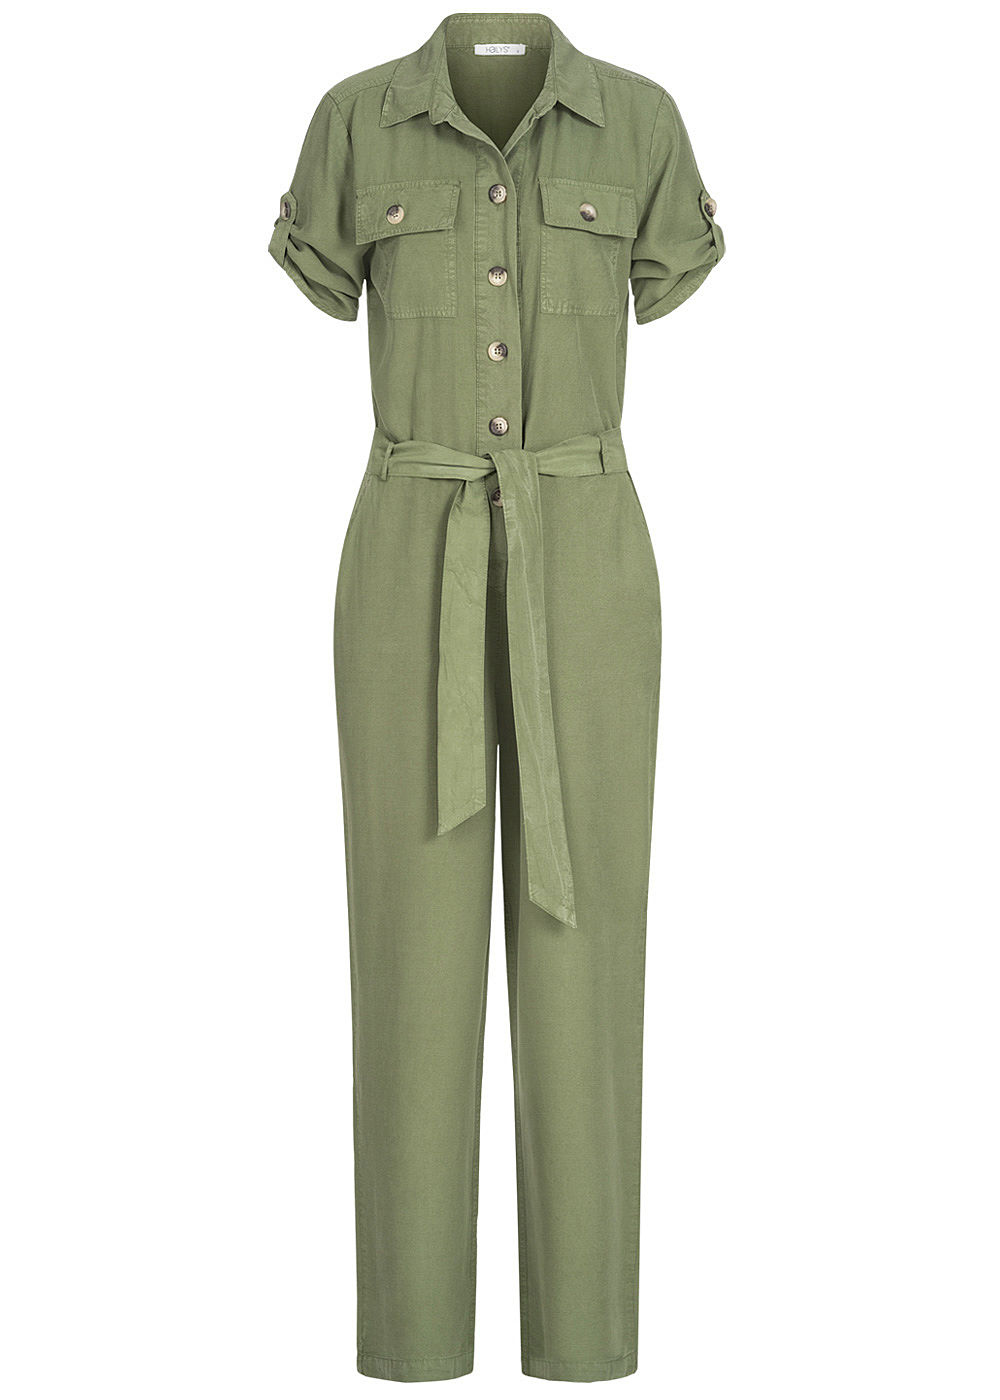 Hailys Damen Turn-up Jumpsuit  4-Pockets inkl. Bindegürtel Knopfleiste khaki grün - Art.-Nr.: 20062900